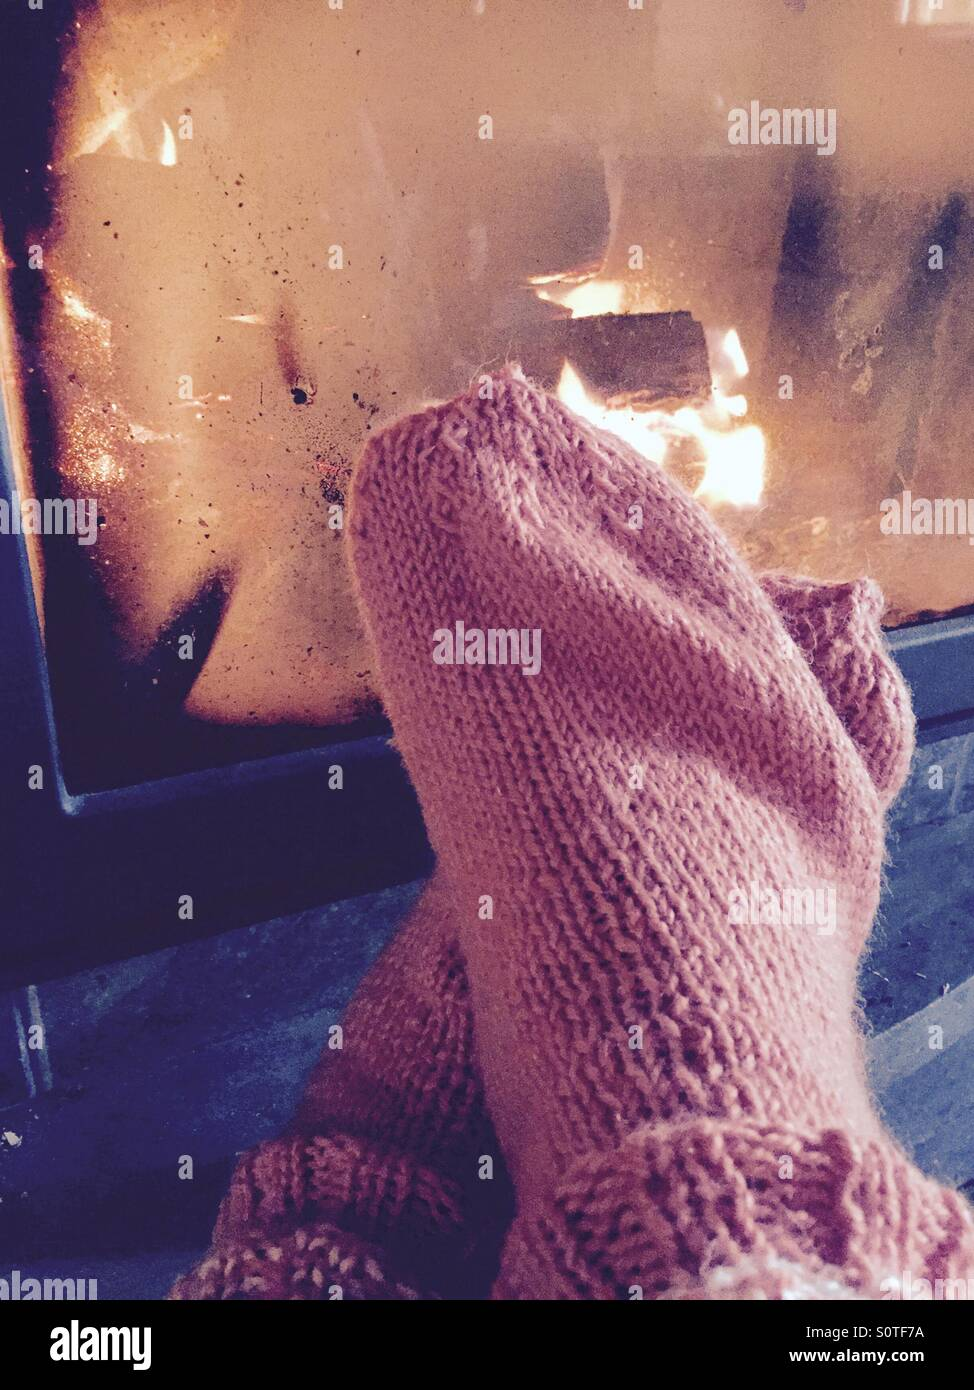 Warming up by a fire place wearing wool socks made by grandmother - Stock Image